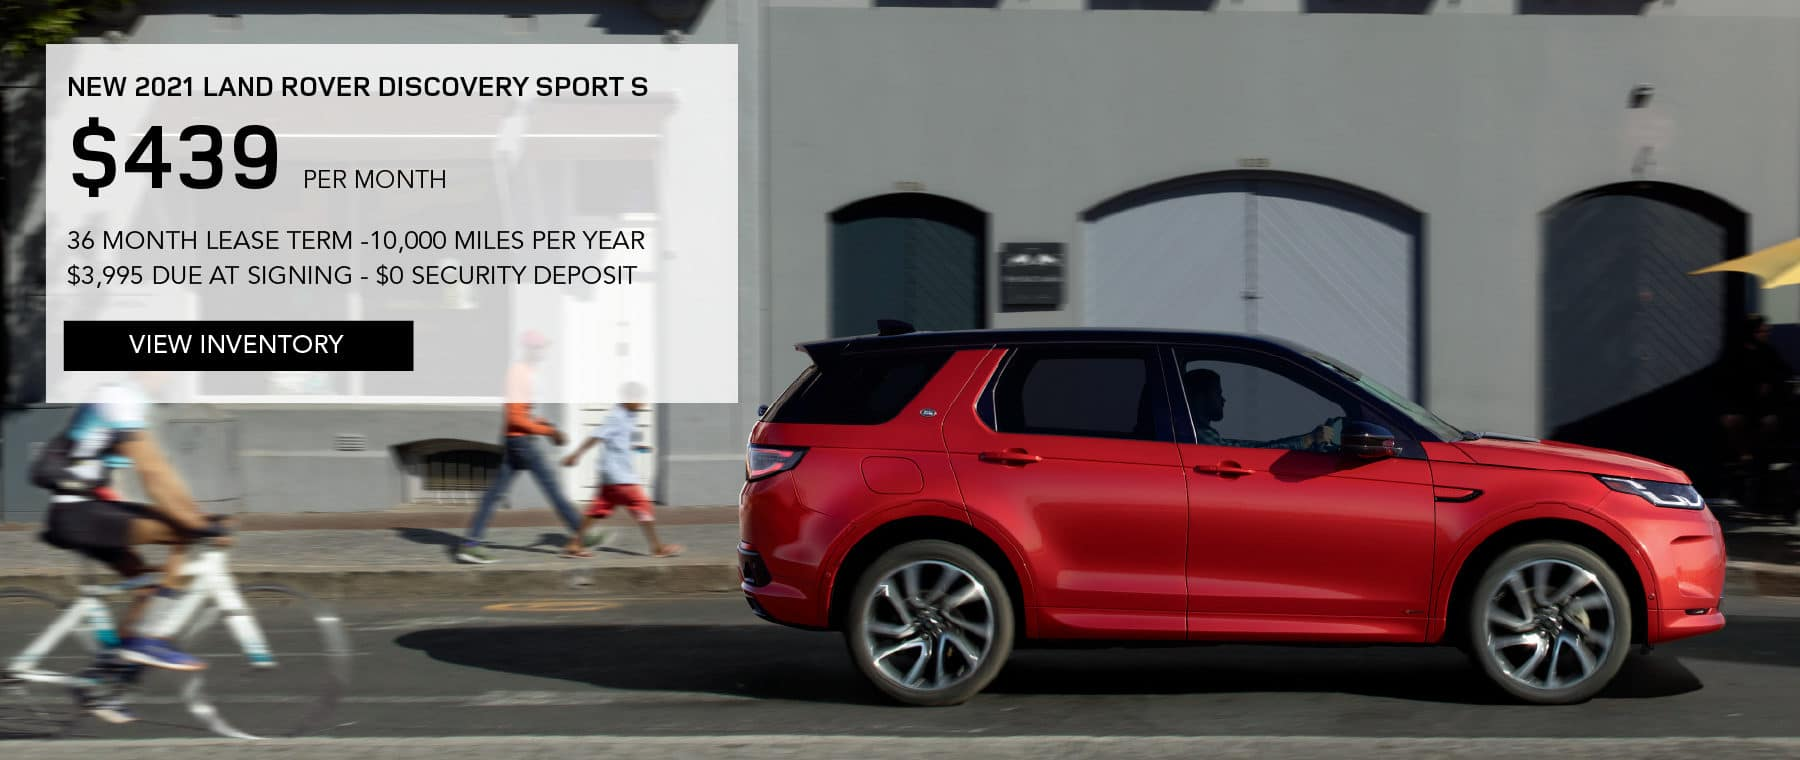 NEW 2021 LAND ROVER DISCOVERY SPORT S. $439 PER MONTH. 36 MONTH LEASE TERM. $3,995 CASH DUE AT SIGNING. $0 SECURITY DEPOSIT. 10,000 MILES PER YEAR. EXCLUDES RETAILER FEES, TAXES, TITLE AND REGISTRATION FEES, PROCESSING FEE AND ANY EMISSION TESTING CHARGE. ENDS 8/2/2021. VIEW INVENTORY. RED LAND ROVER DISCOVERY SPORT DRIVING THROUGH CITY.